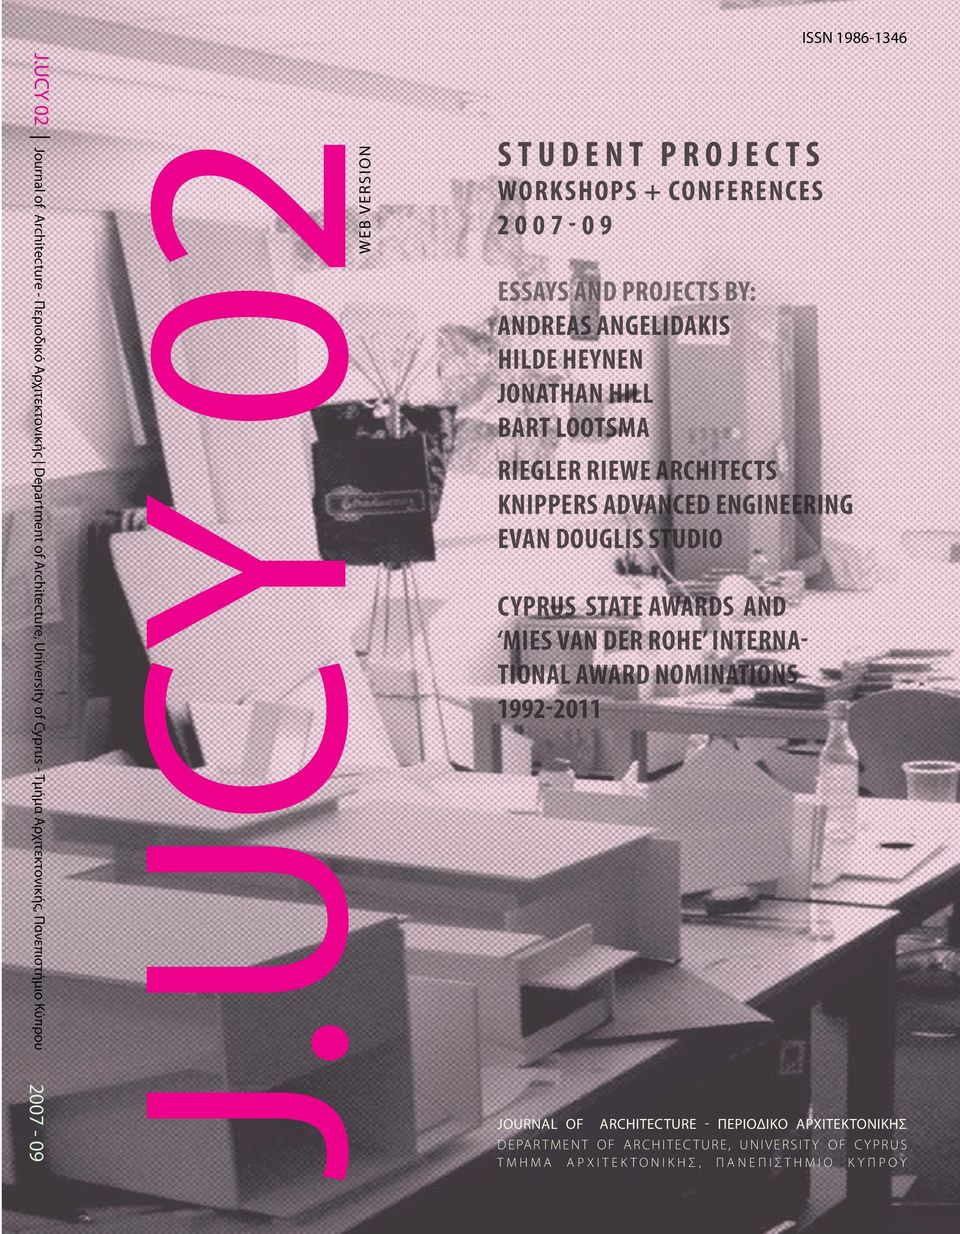 J.UCY 02 WEB VERSION student projects workshops + conferences 2007-09 essays and projects by: andreas angelidakis hilde heynen JONATHAN HILL BART LOOTSMA